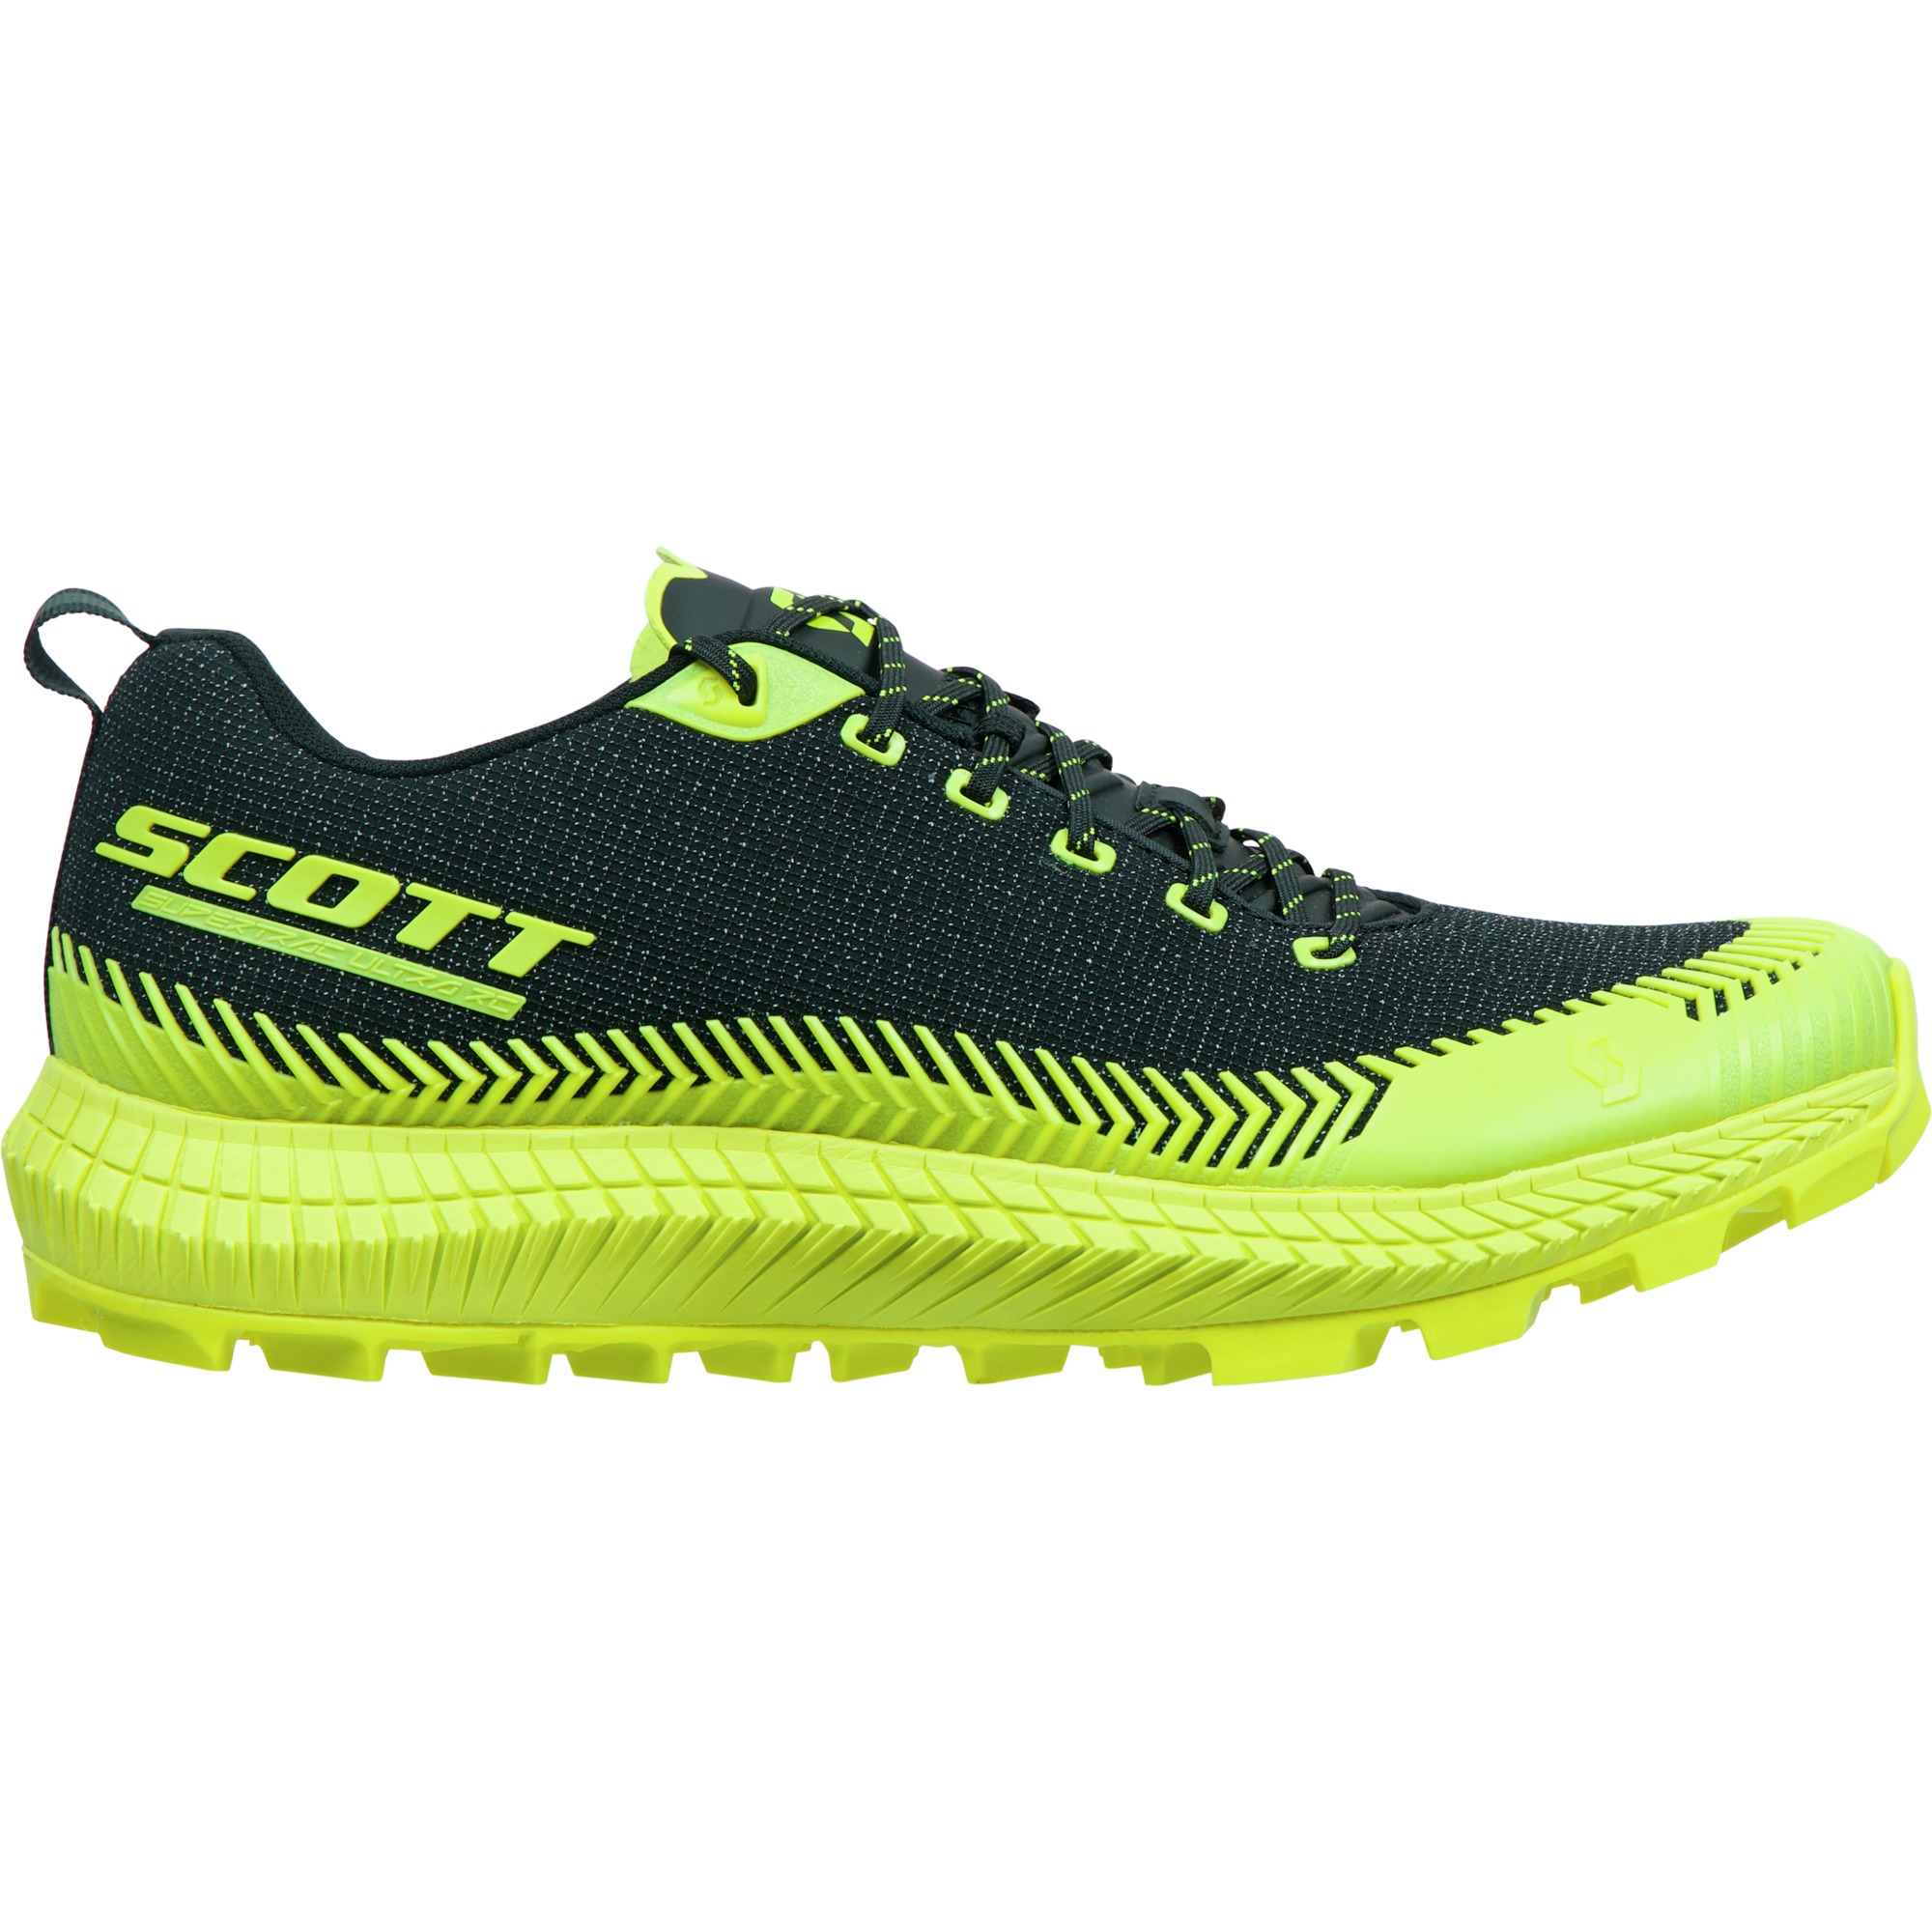 Scott Shoe Supertrac Ultra RC black/yellow